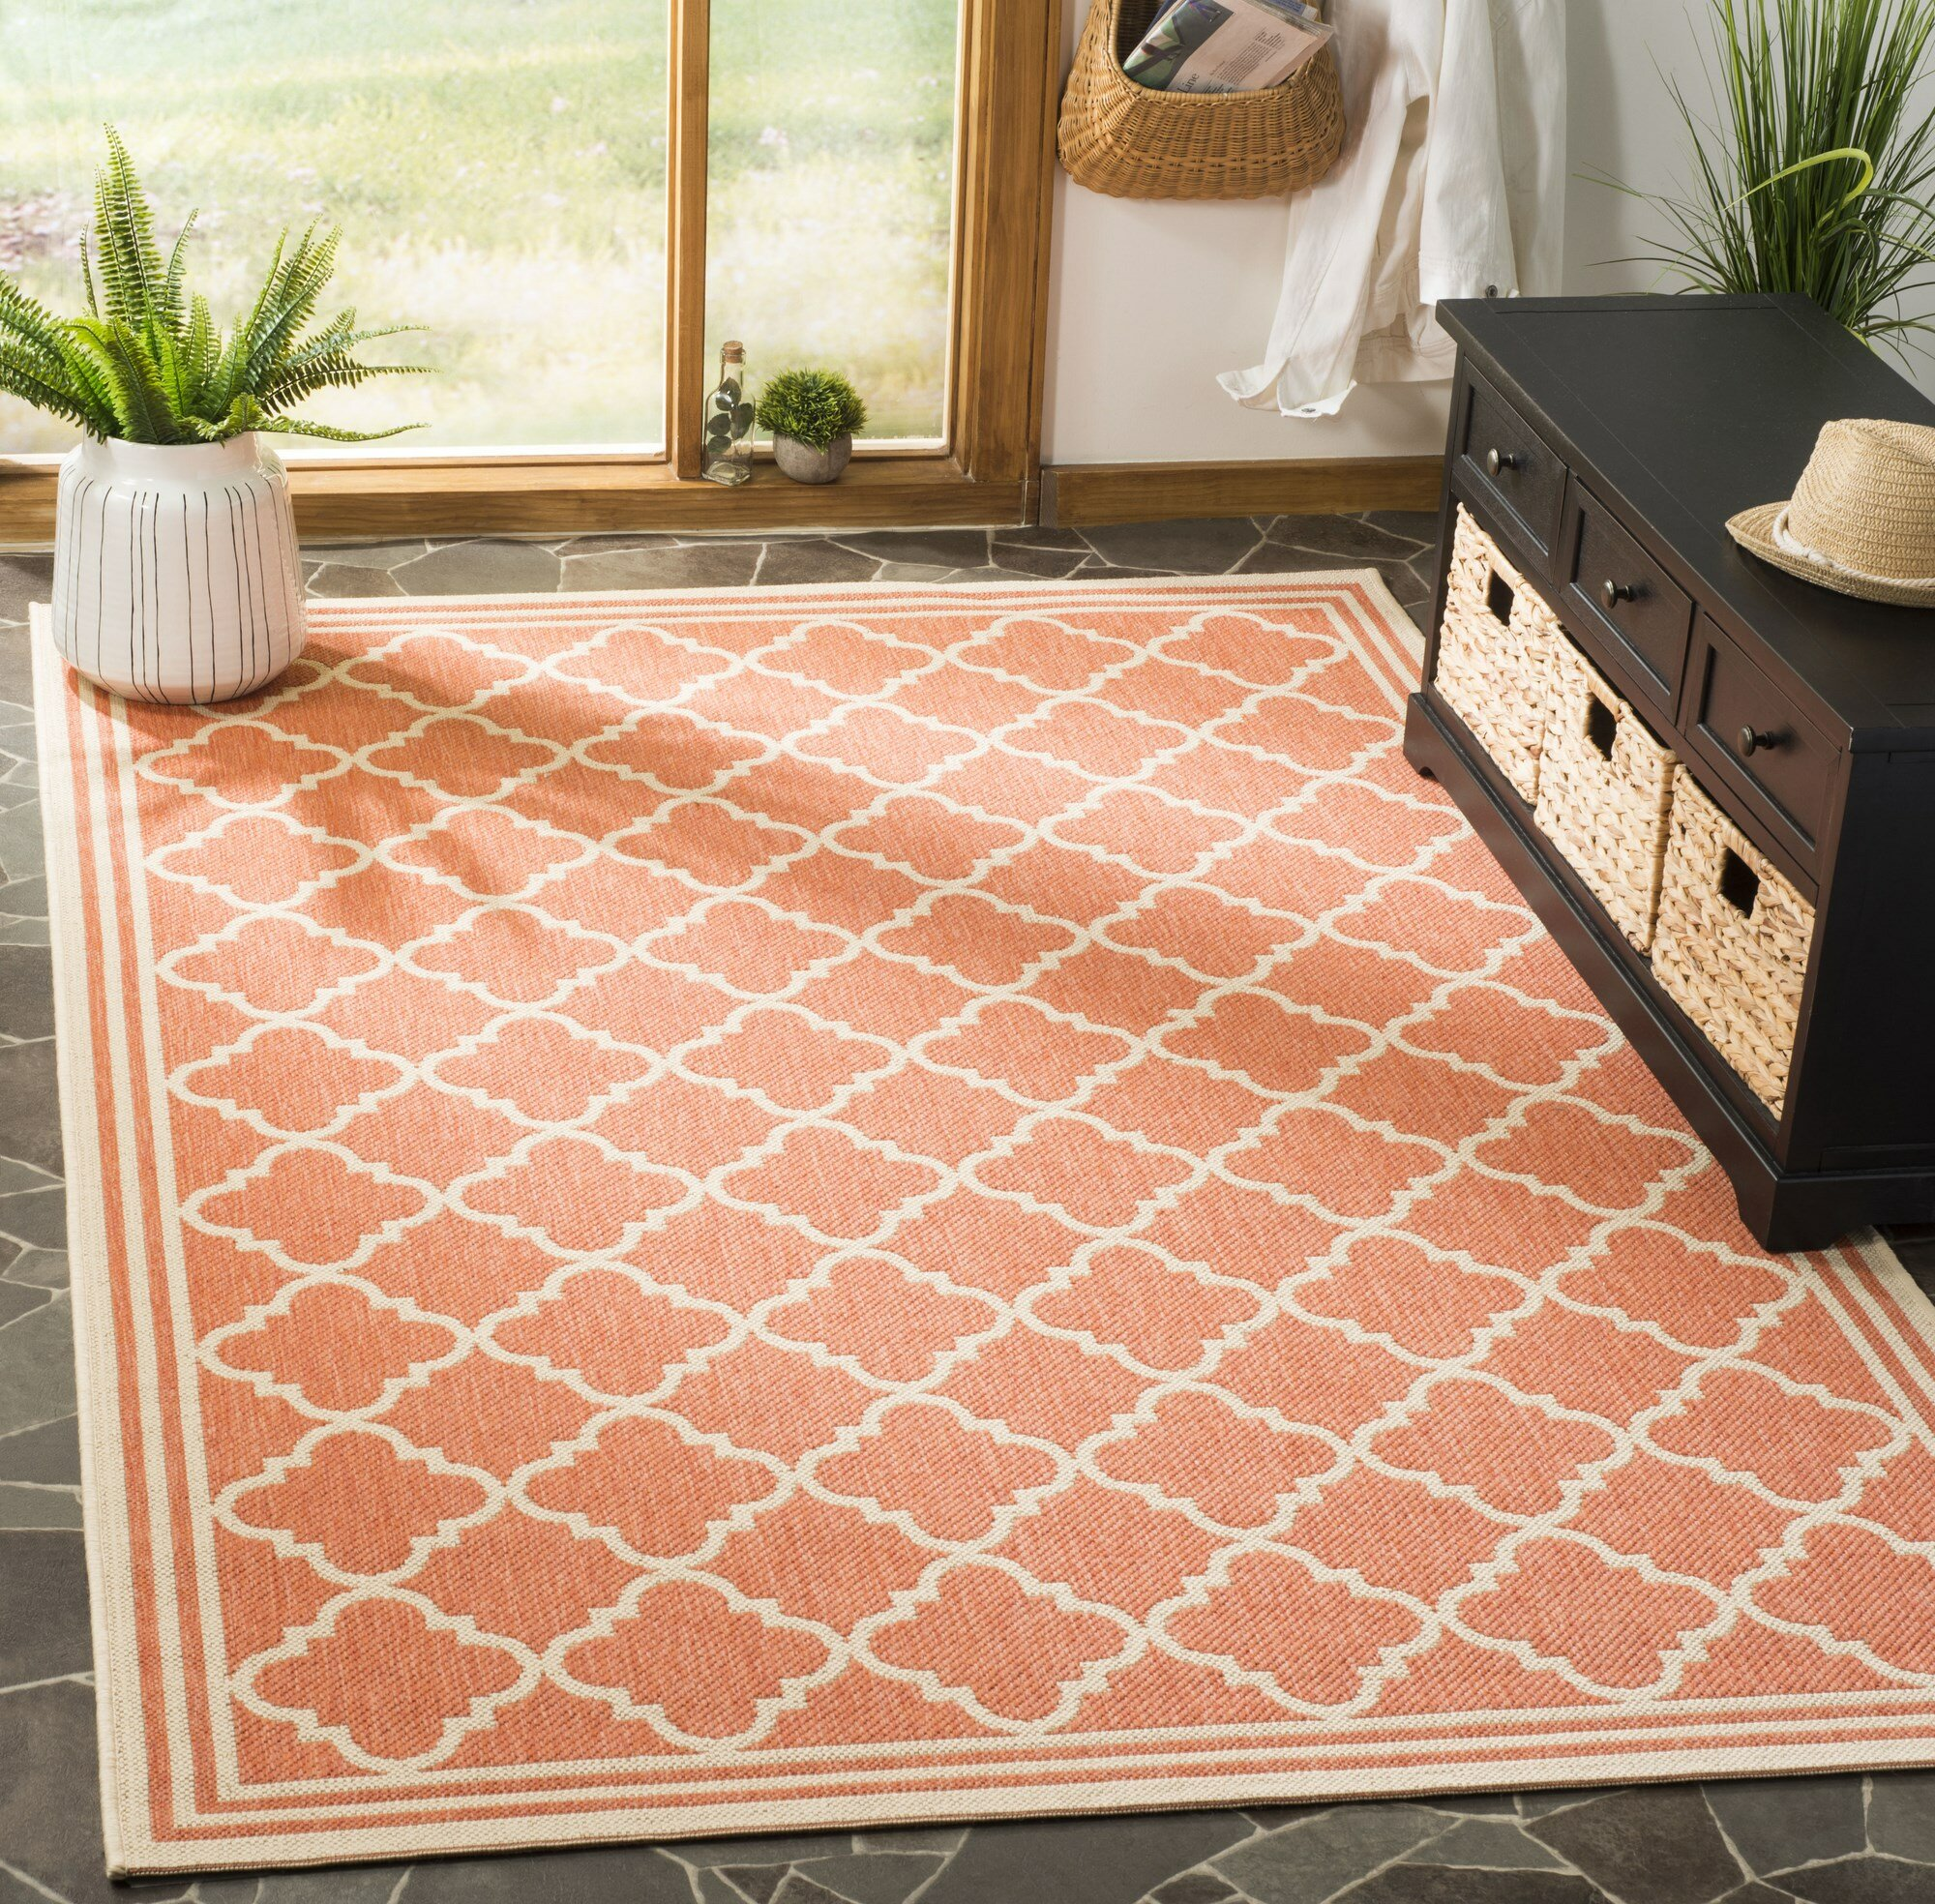 Darby Home Co Berardi Rust Cream Area Rug Reviews Wayfair